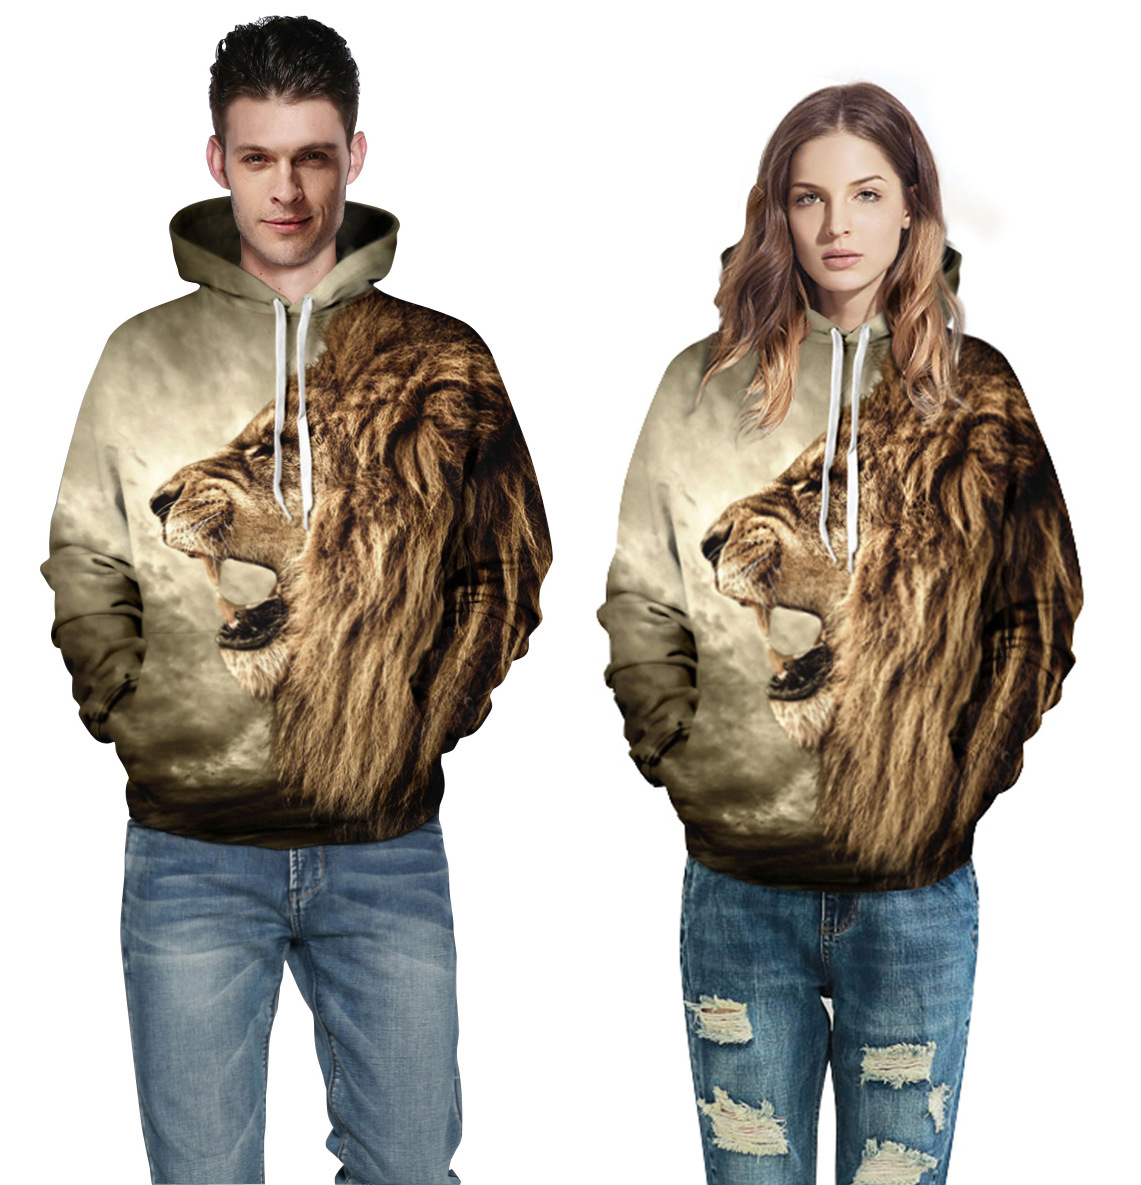 Couple's Hooded Sweatshirt Lion Print Hooded Sweater